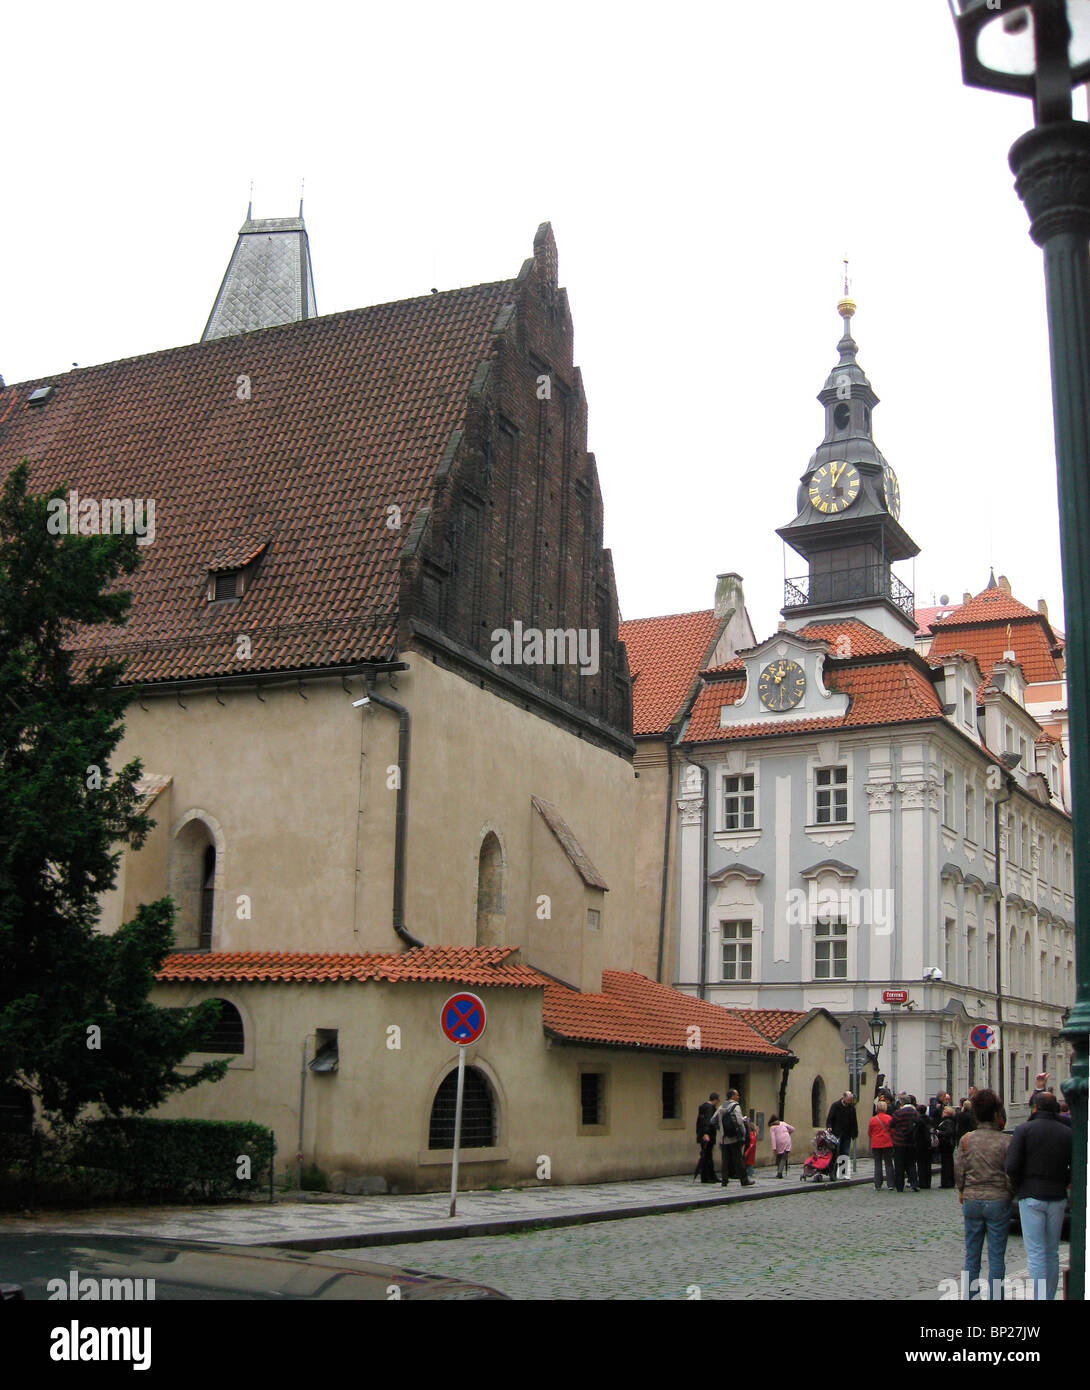 ALT-NOY (OLD-NEW) SYNAGOGUE IN PRAGUE DATING FROM THE 14TH. C. IS ONE OF THE OLDEST SYNAGOGUES IN EUROPE IN WHICH - Stock Image